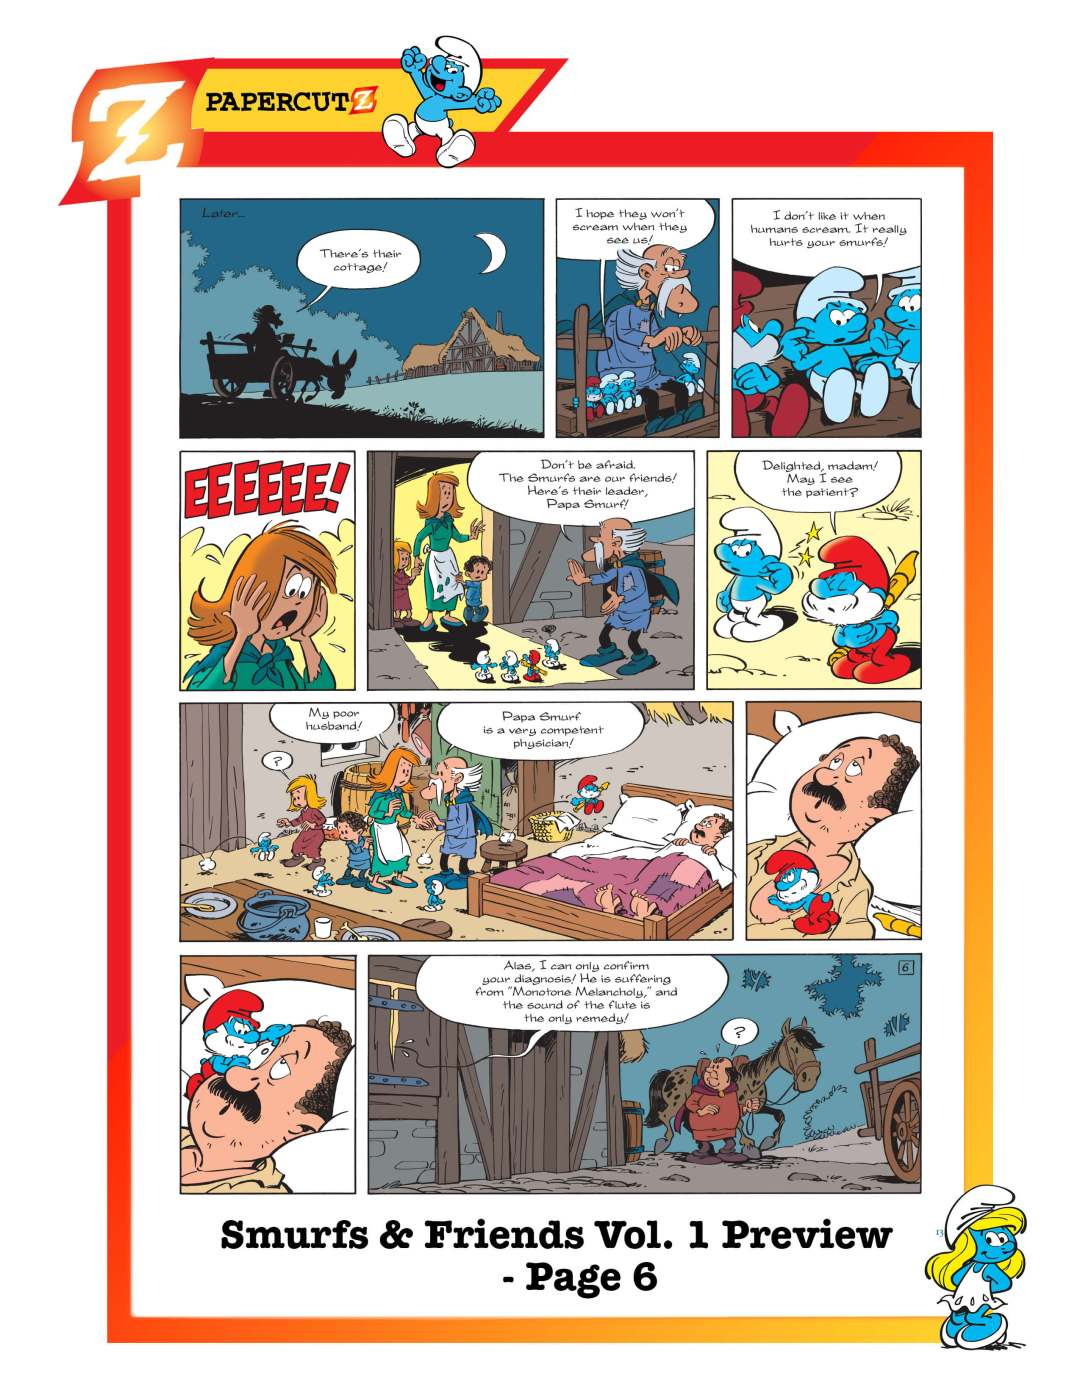 Smurfs_and_Friends_preview_page6